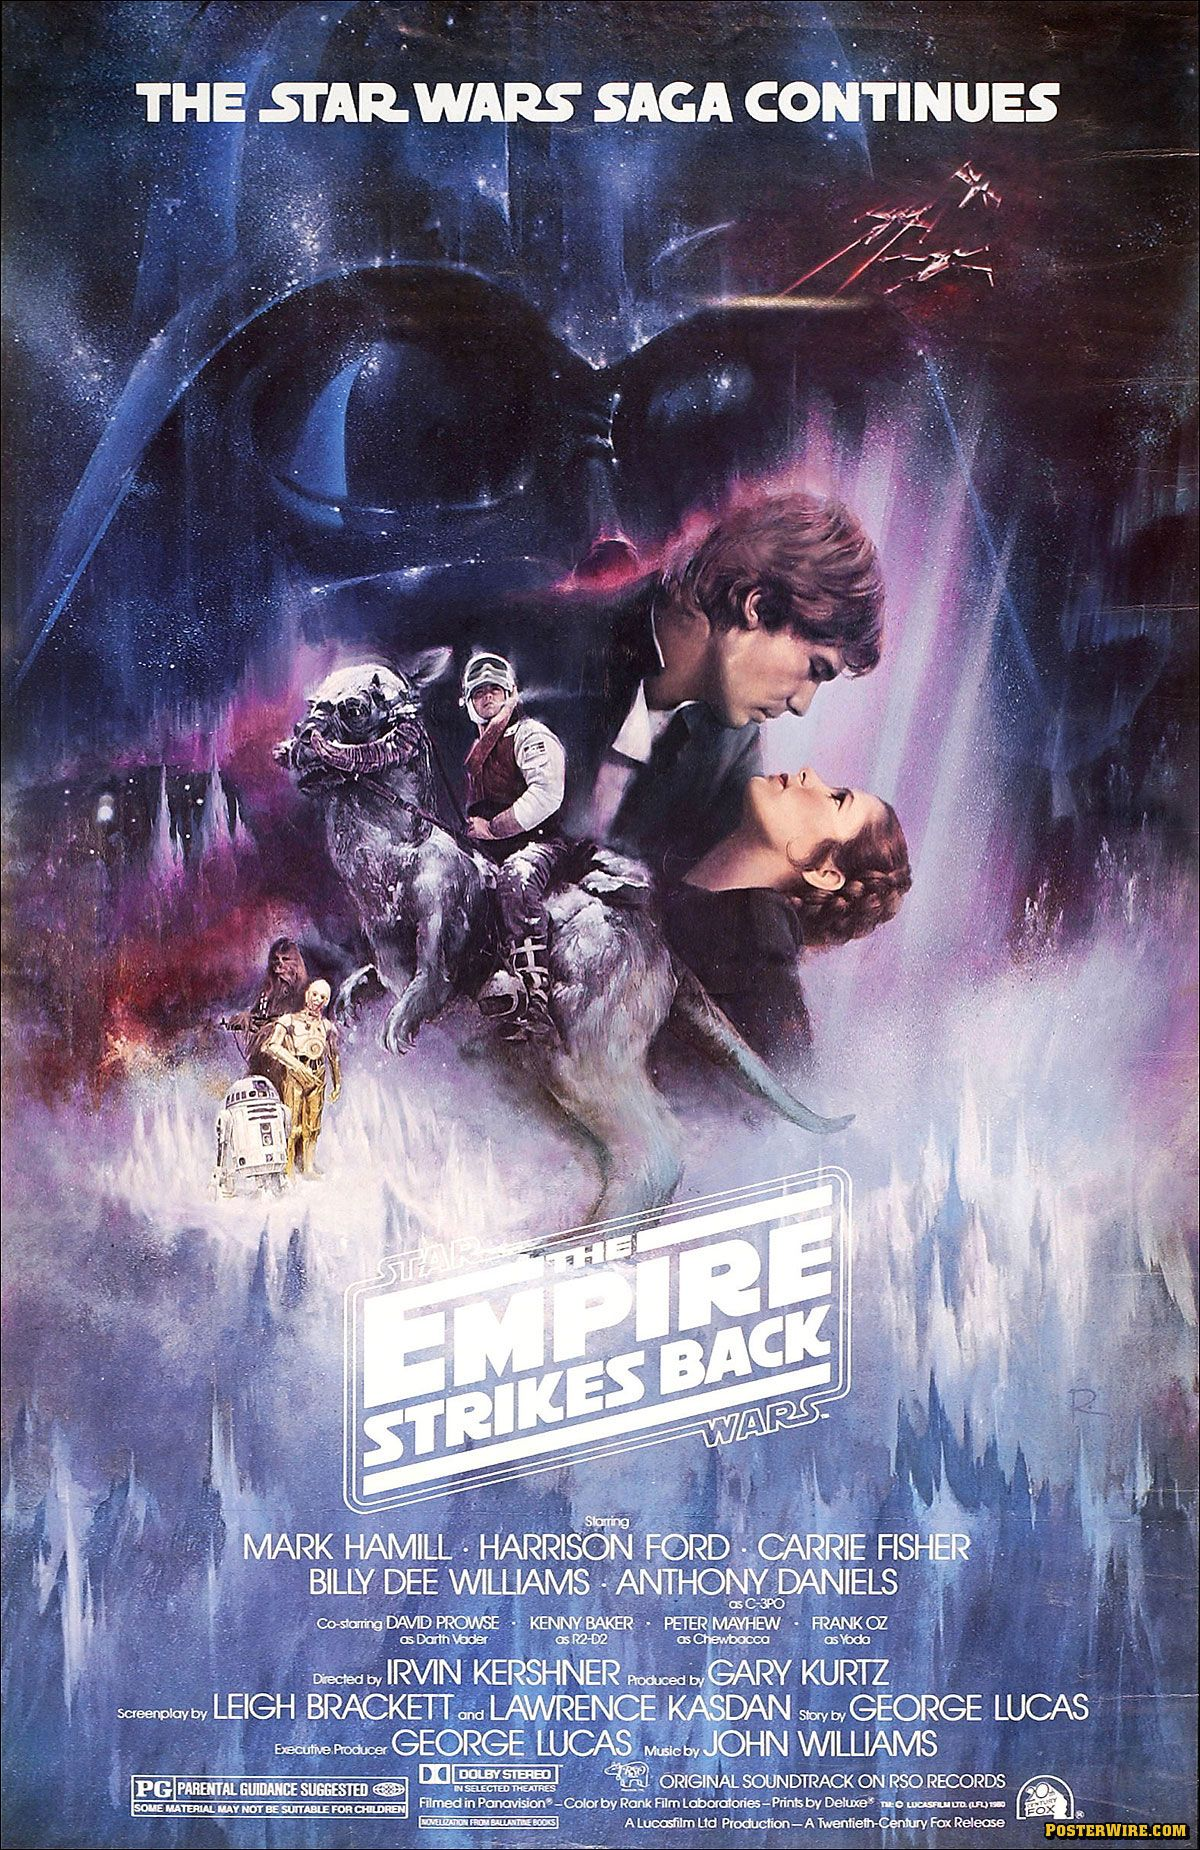 The movie poster for Star Wars: Episode V - The Empire Strikes Back